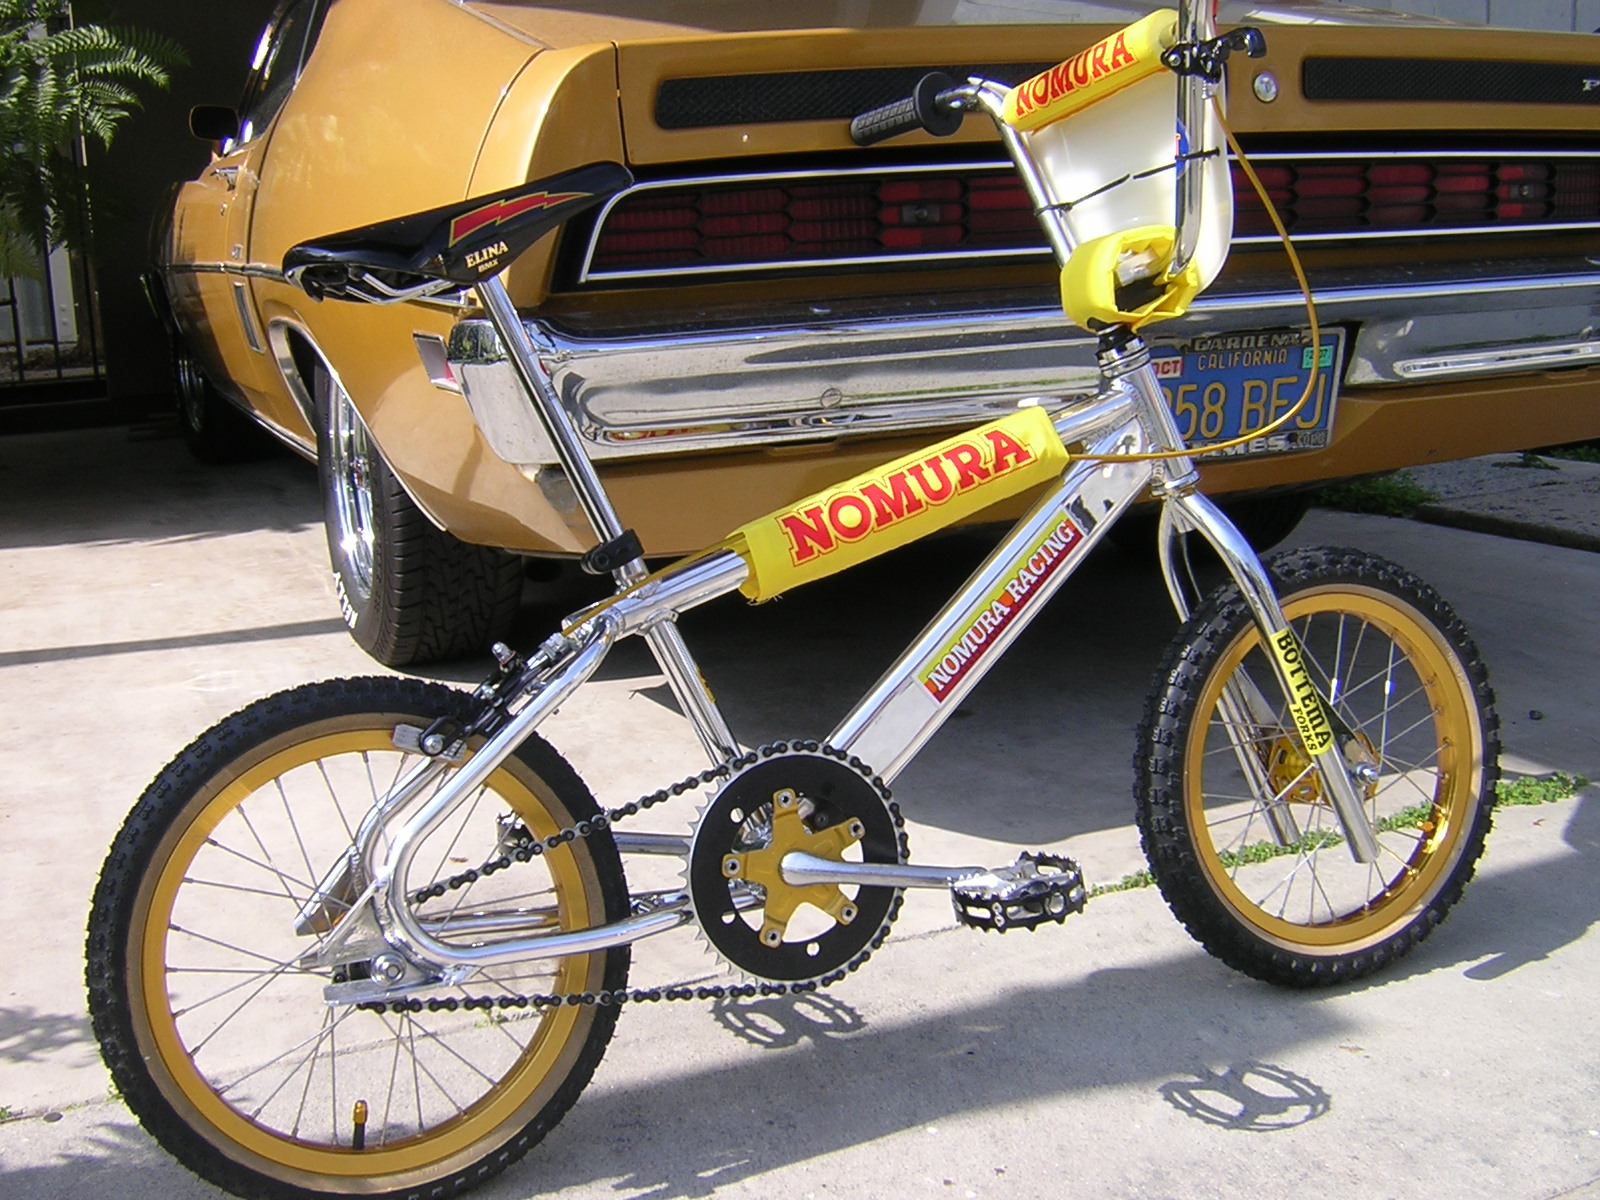 http://uploads.bmxmuseum.com/user-images/3408/post-1243-11734691235c7d77c3a6.jpg